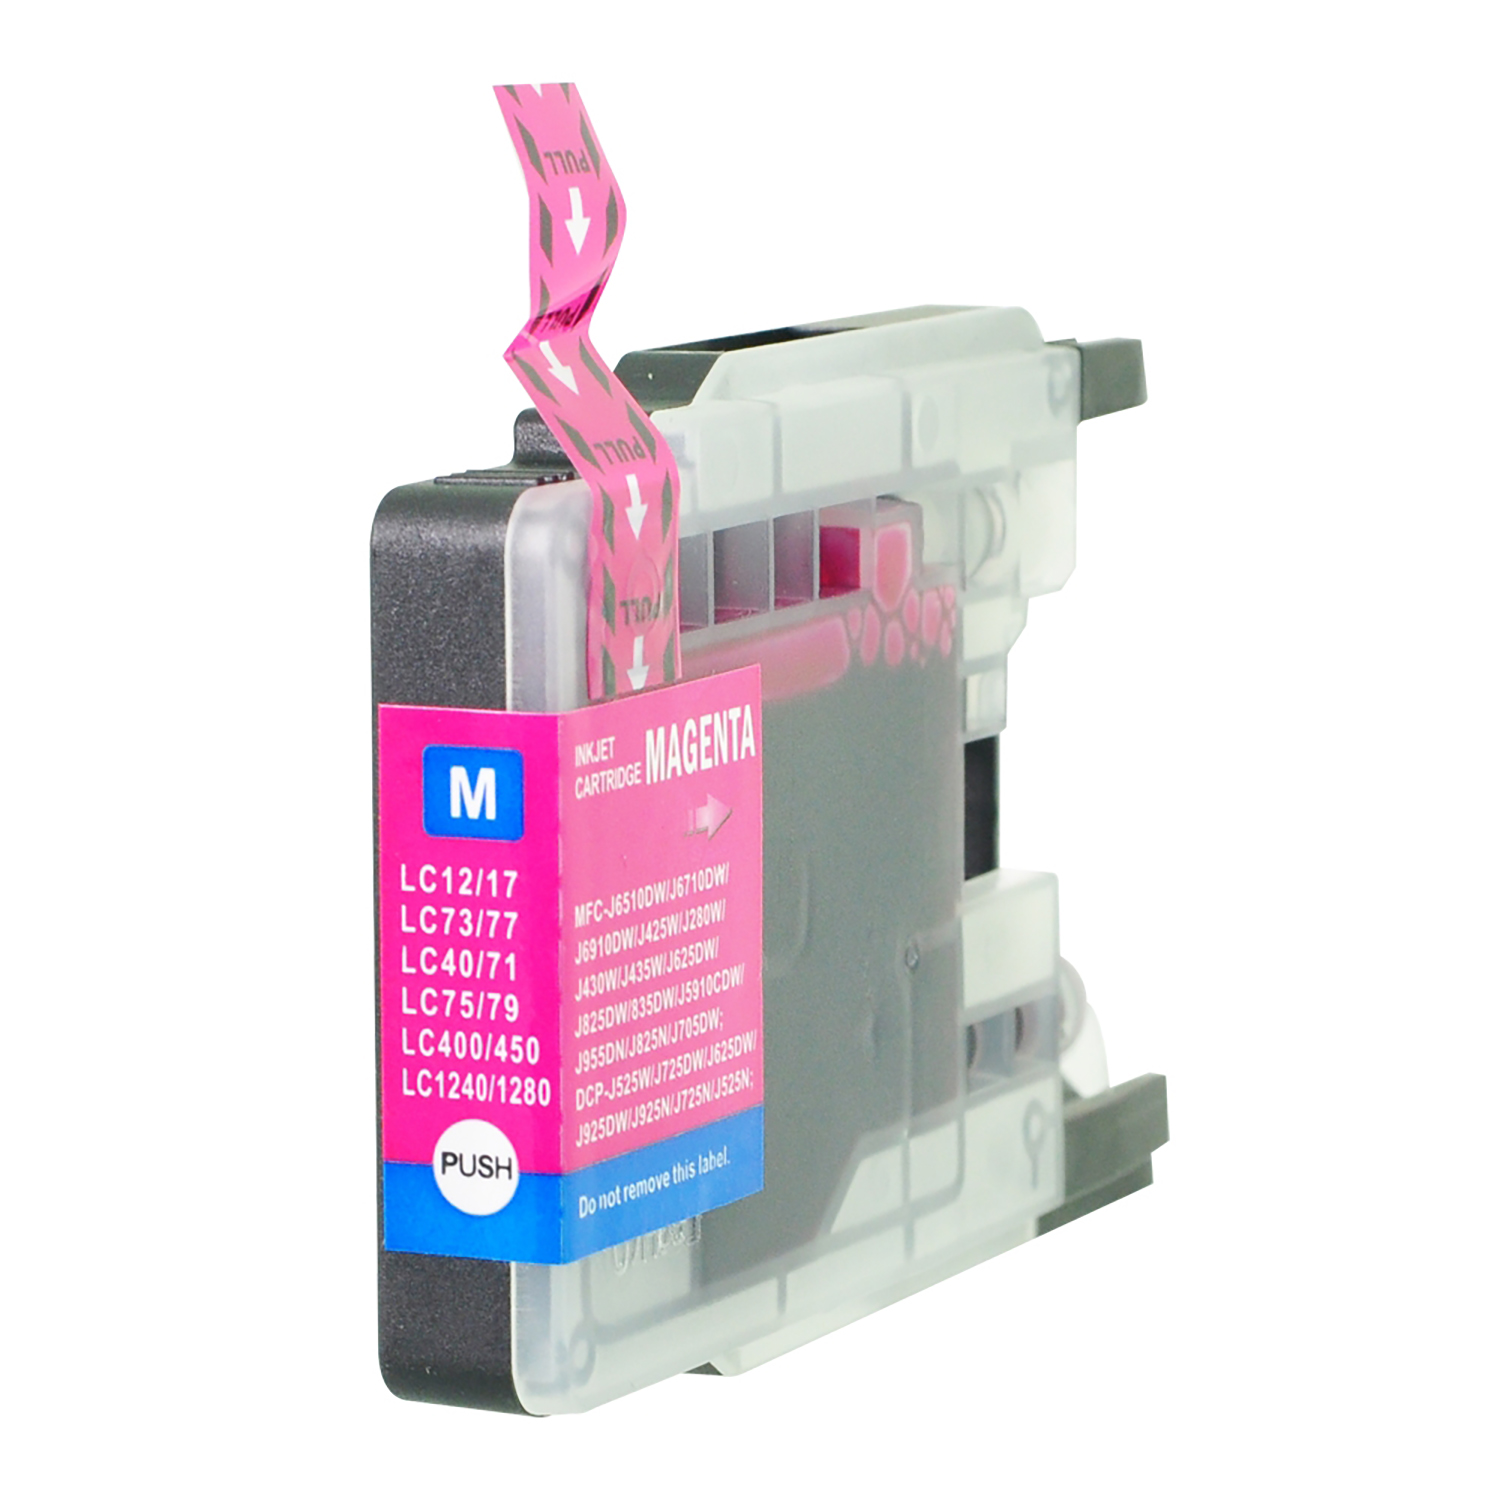 Ink cartridges 5 Star Value Remanufactured Inkjet Cartridge Page Life 1200pp HY Magenta [Brother LC1280XLM Alternative]